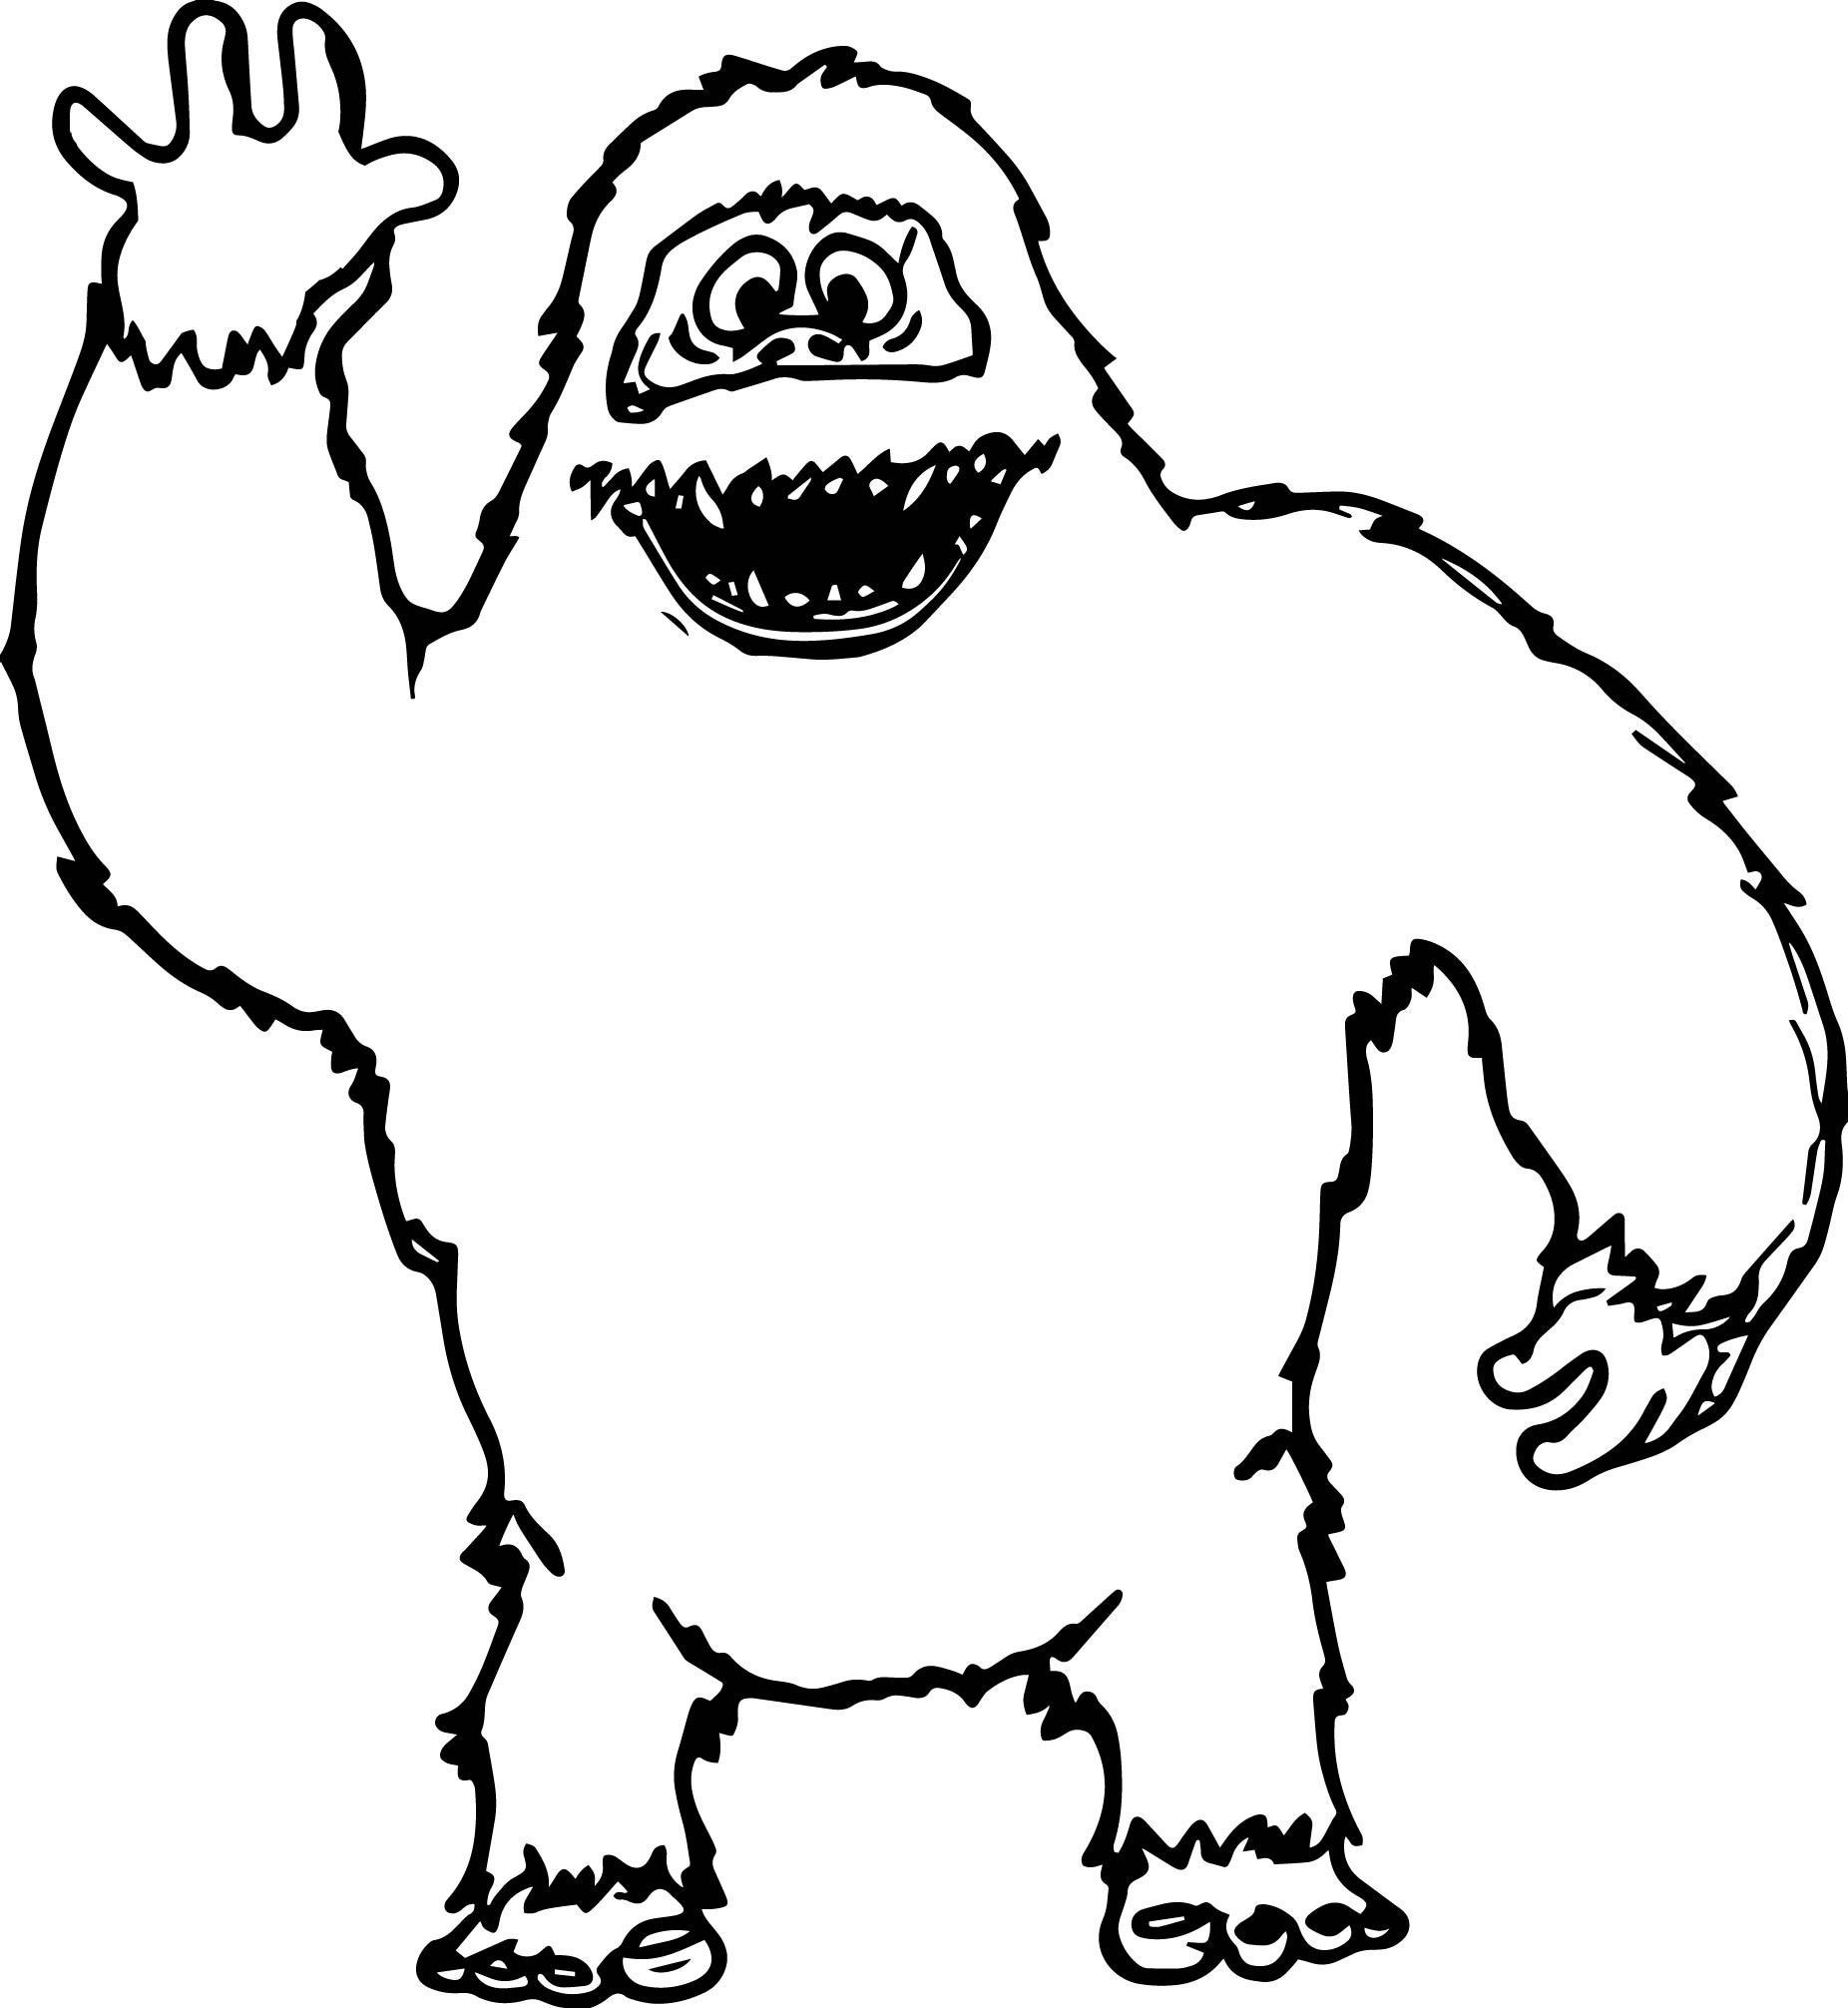 Bumble Rudolph Coloring Pages Rudolph Coloring Pages Snowman Coloring Pages Coloring Pages In 2021 Rudolph Coloring Pages Snowman Coloring Pages Unicorn Coloring Pages